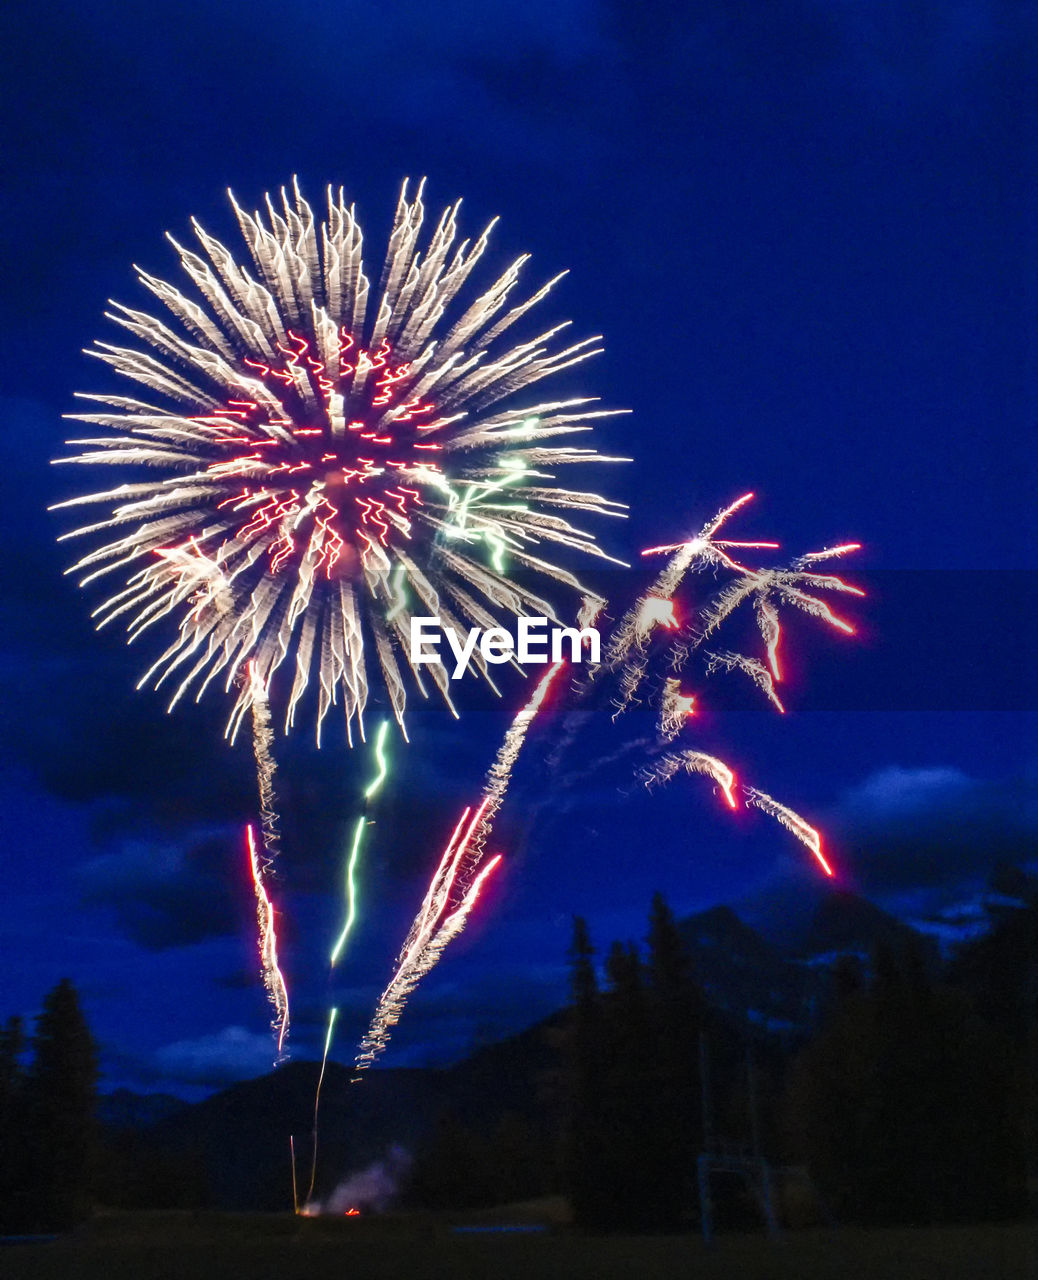 firework, night, sky, celebration, illuminated, motion, firework display, arts culture and entertainment, exploding, event, long exposure, low angle view, nature, glowing, no people, firework - man made object, blurred motion, light, multi colored, outdoors, sparks, explosive